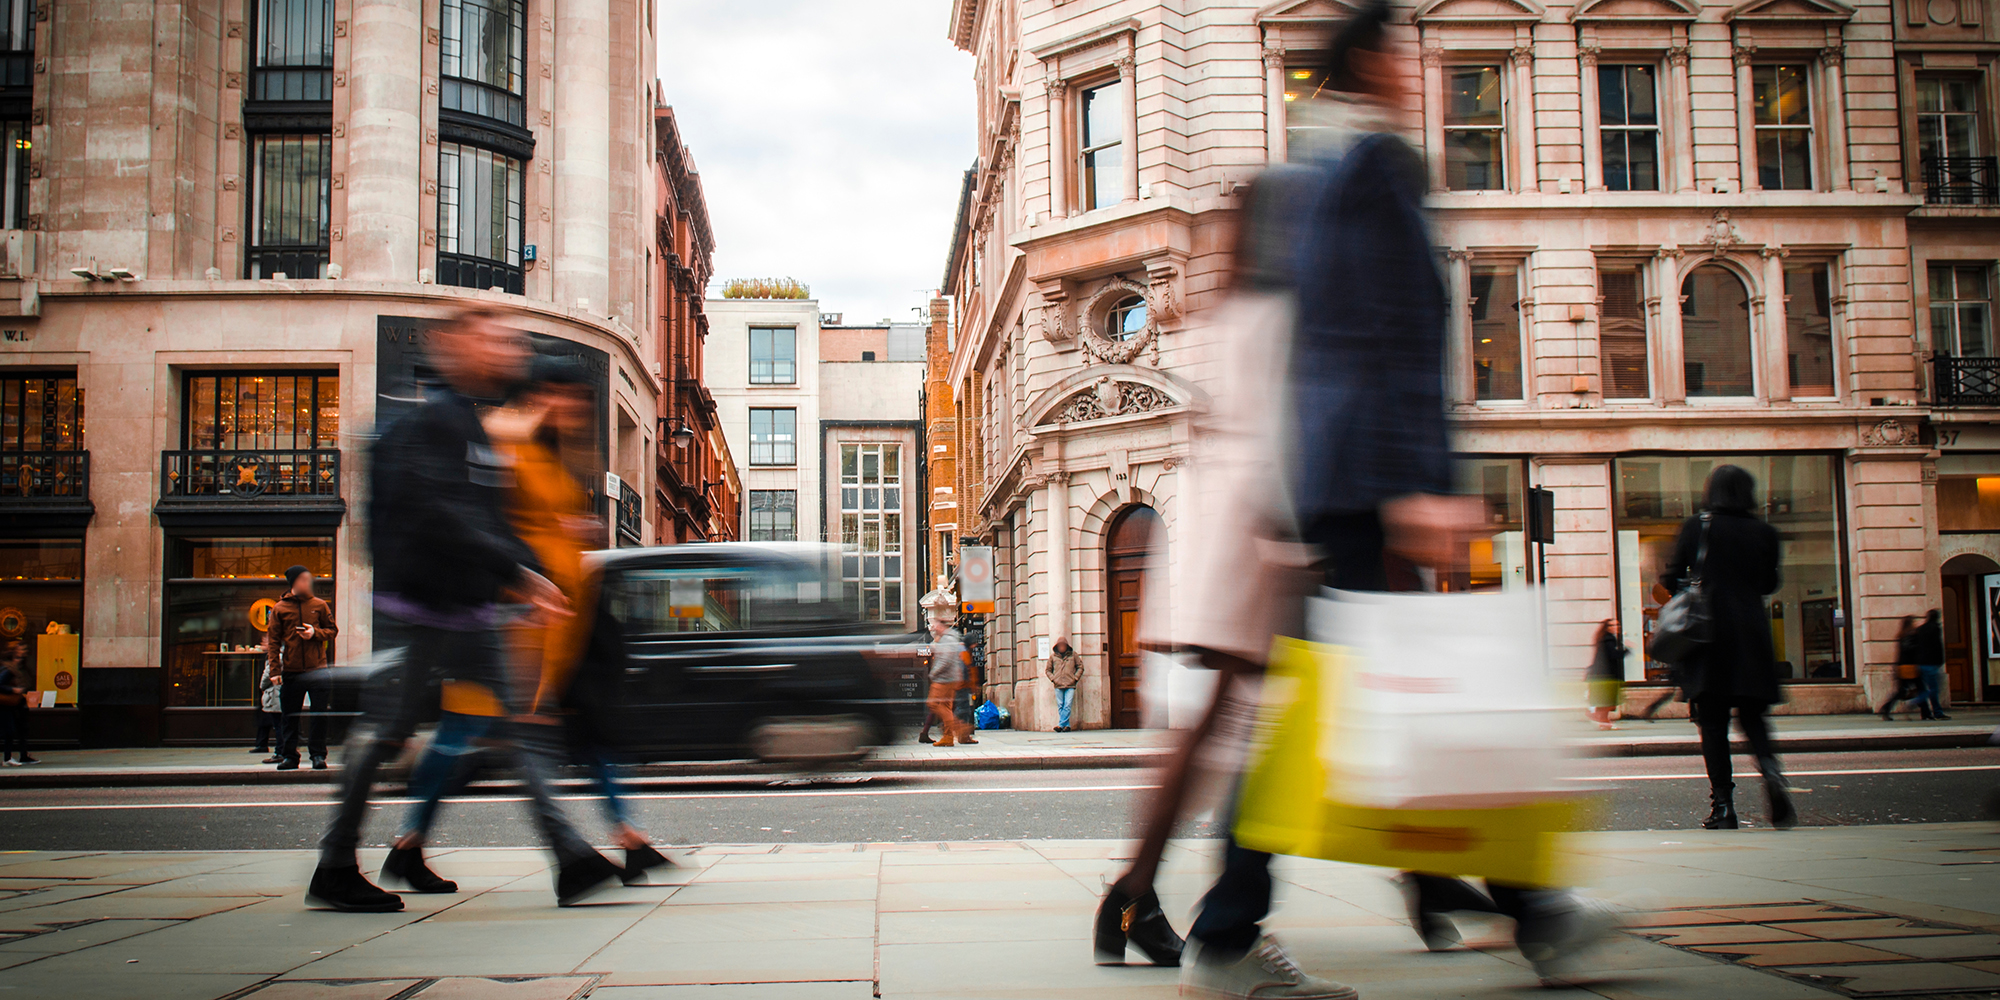 Image of shoppers on busy street in London